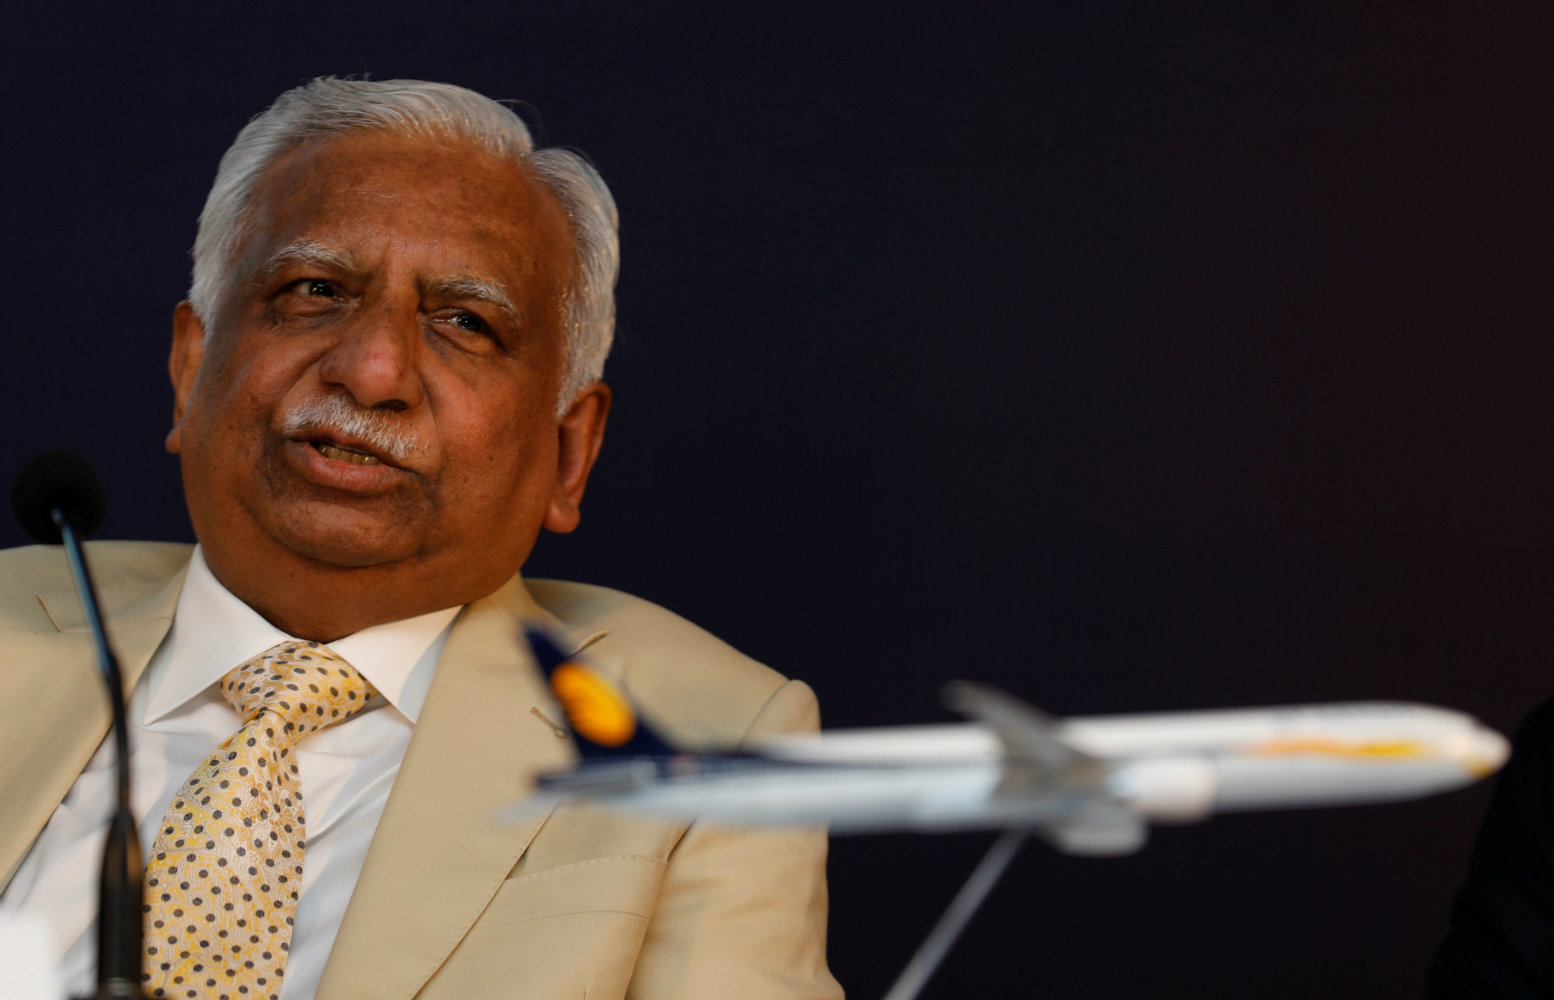 After 25 years, India's oldest private airline may slip out of its founder's hands